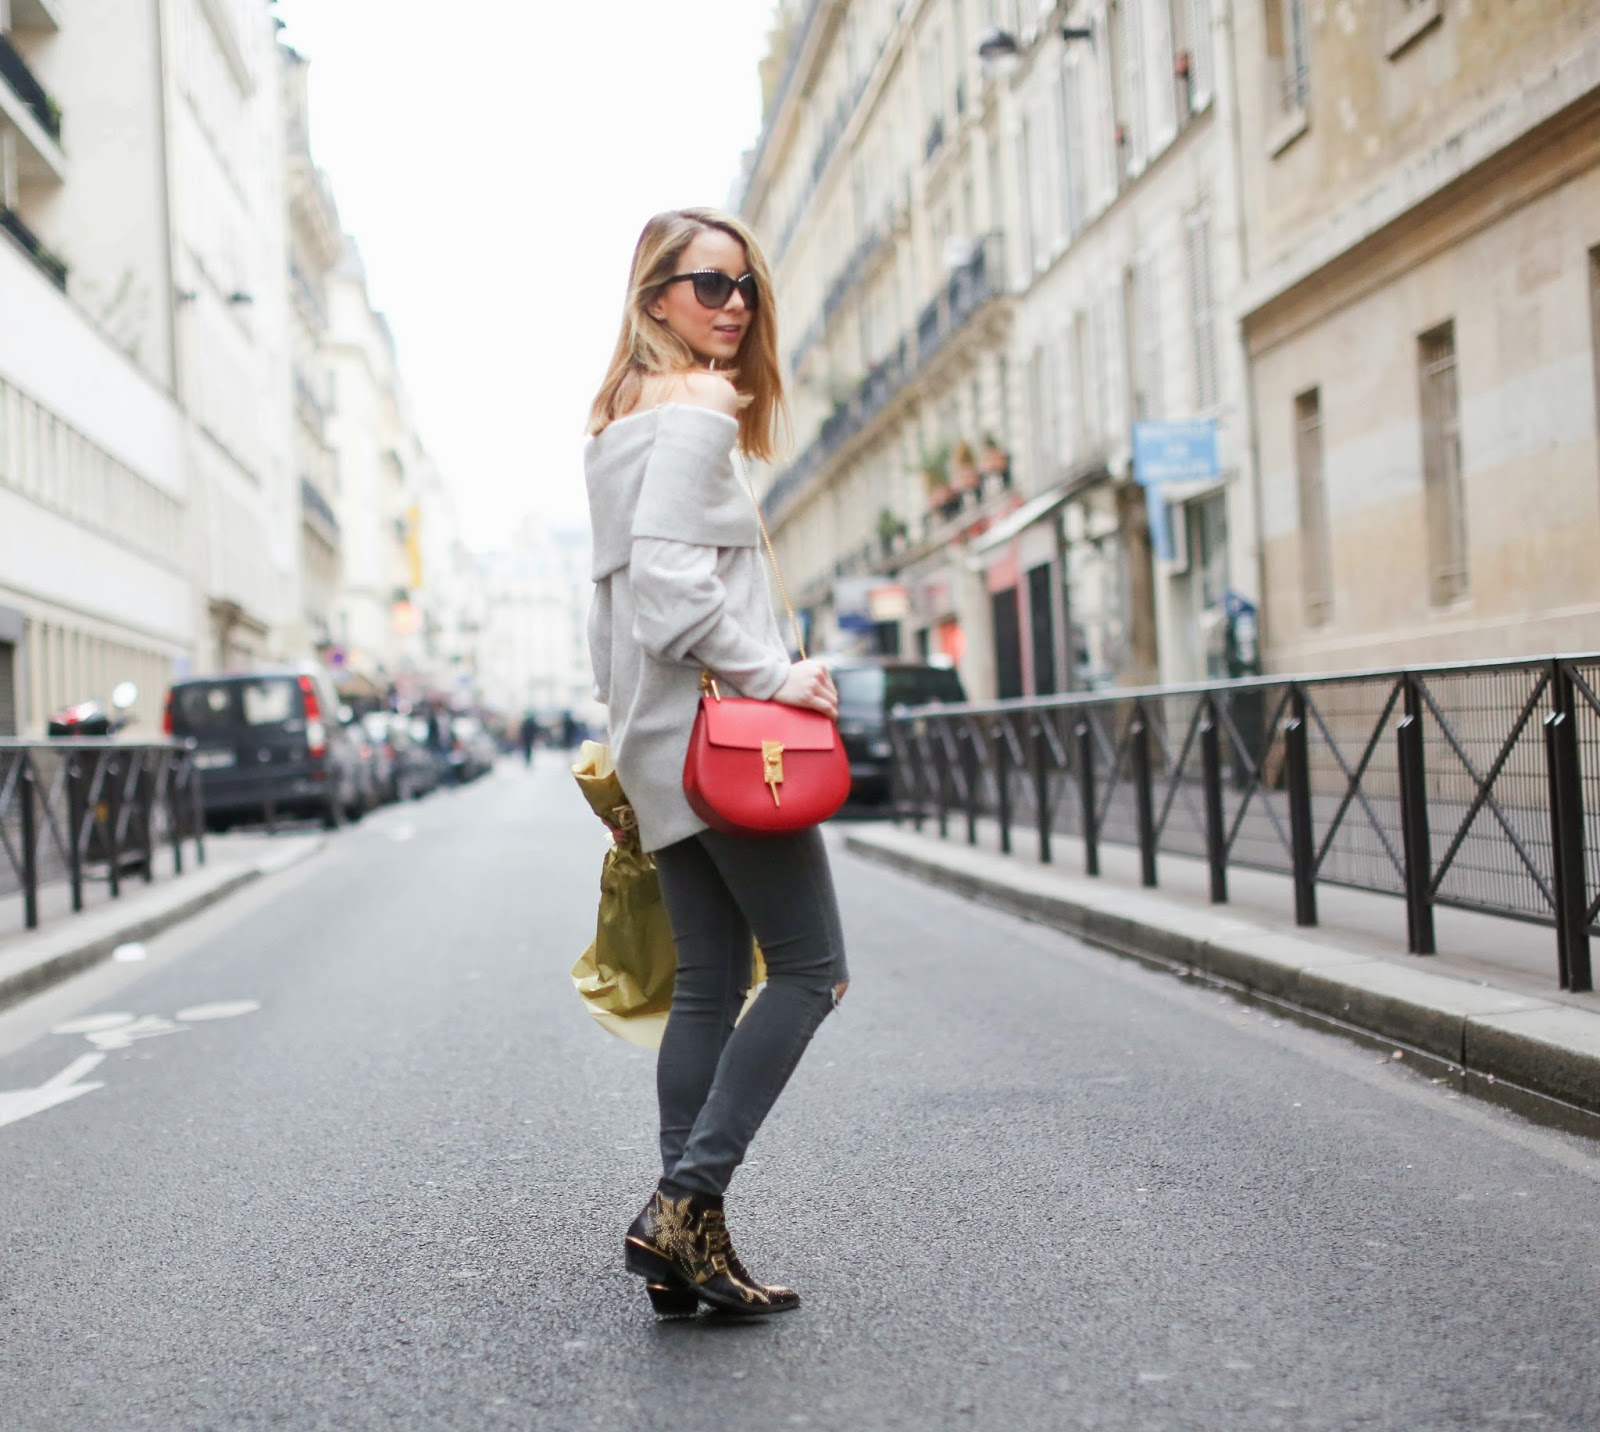 zara, chloé, topshop, sunday, paris, flowers, streetstyle, fashion blogger